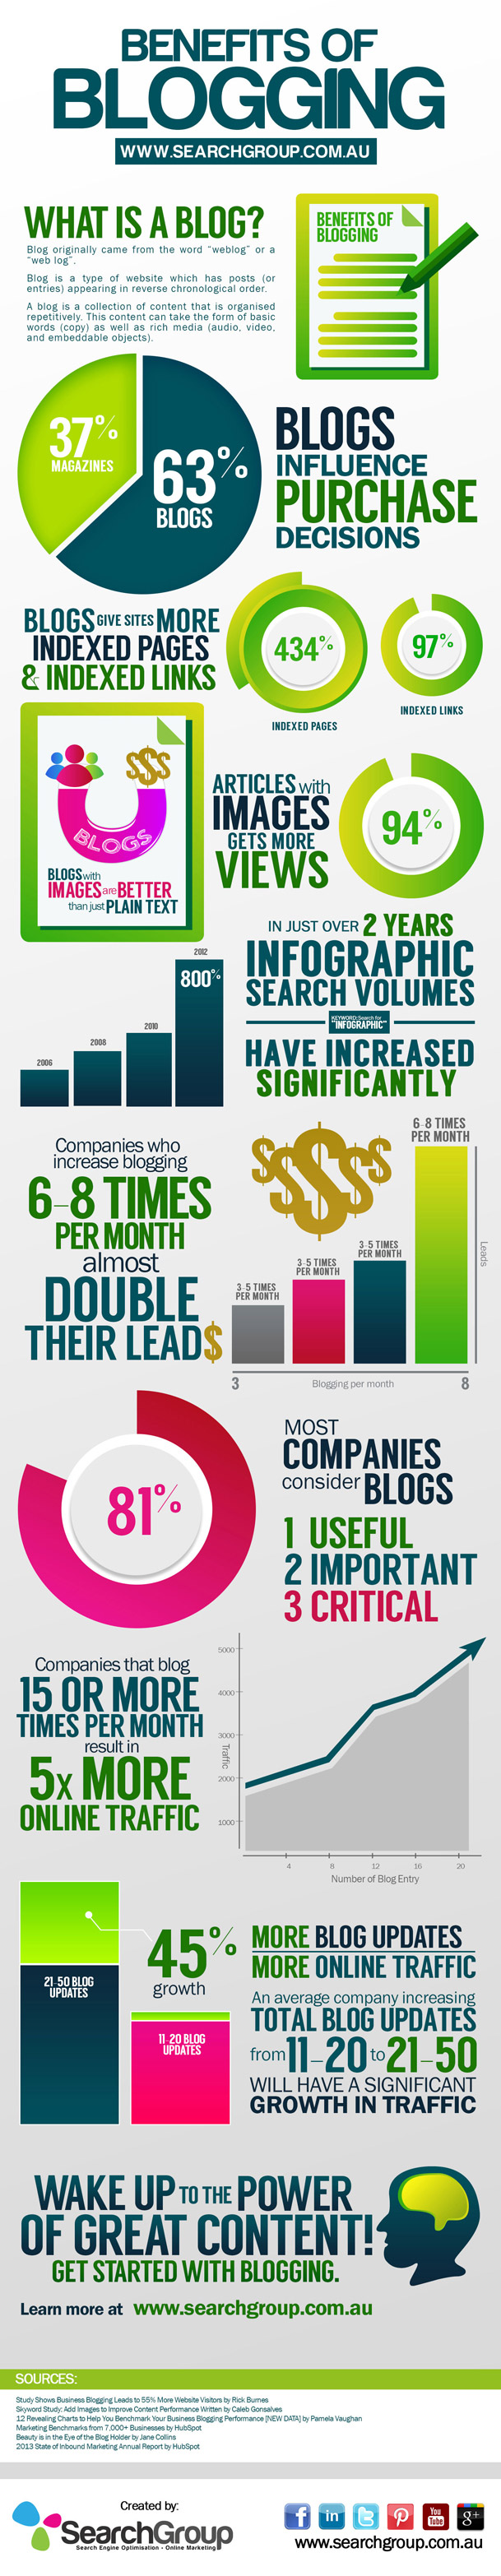 Benefits of Blogging Infographic by Search Group